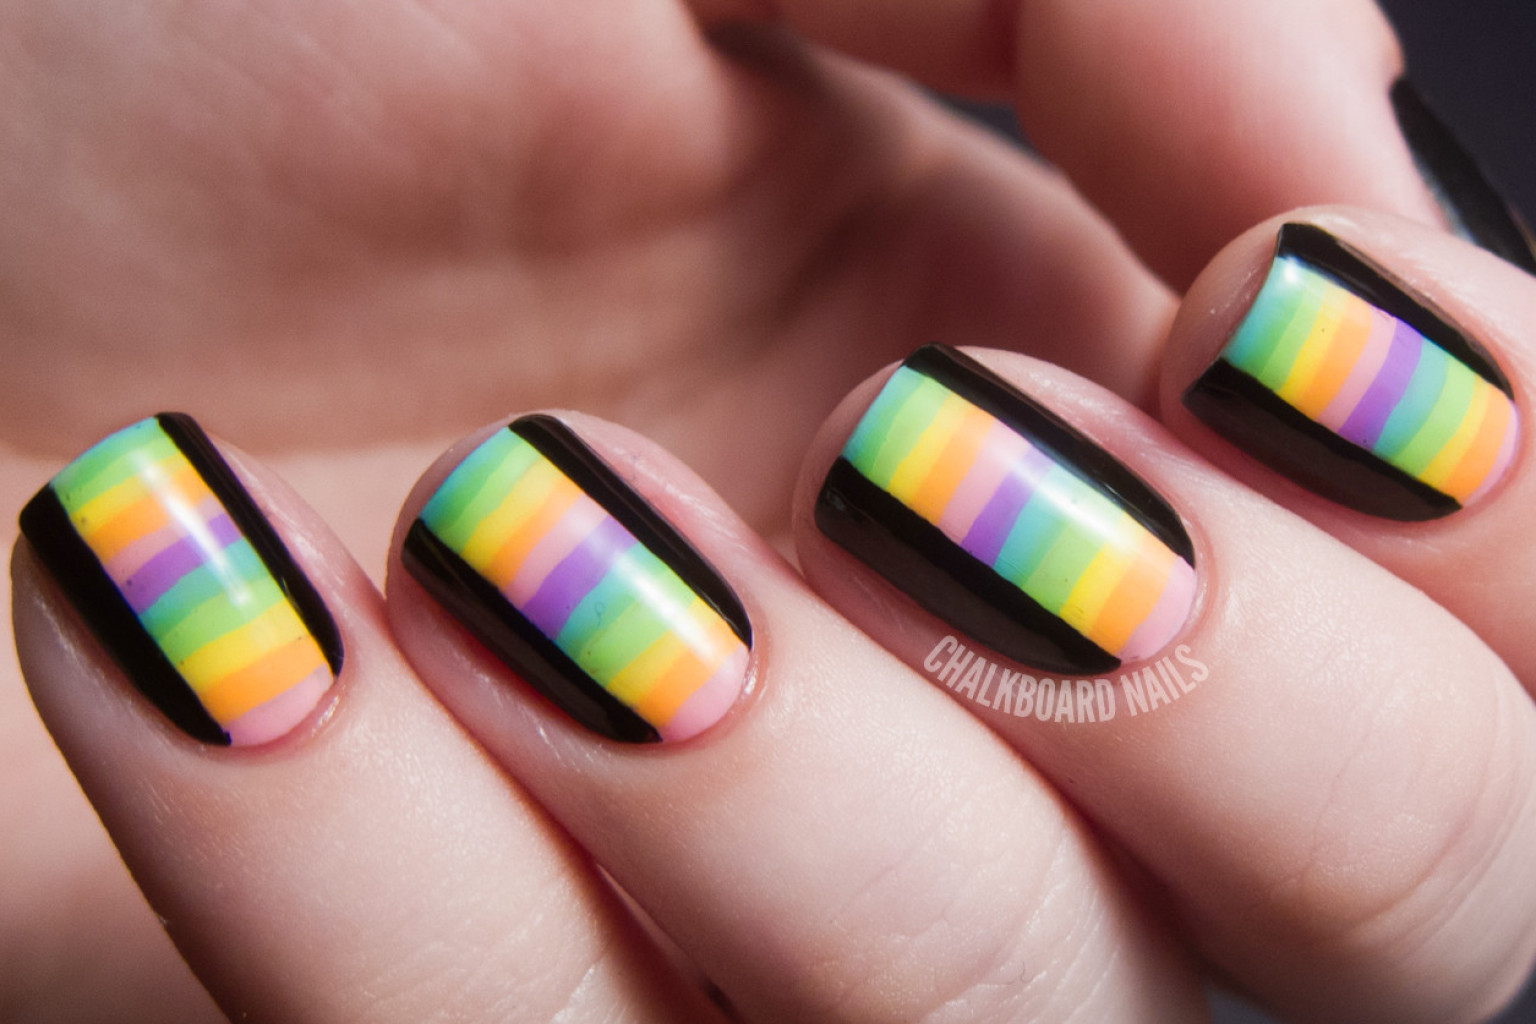 Diy nail ideas kaleidoscope nail art and more of our manicures from diy nail ideas kaleidoscope nail art and more of our manicures from this weekend photos huffpost solutioingenieria Choice Image